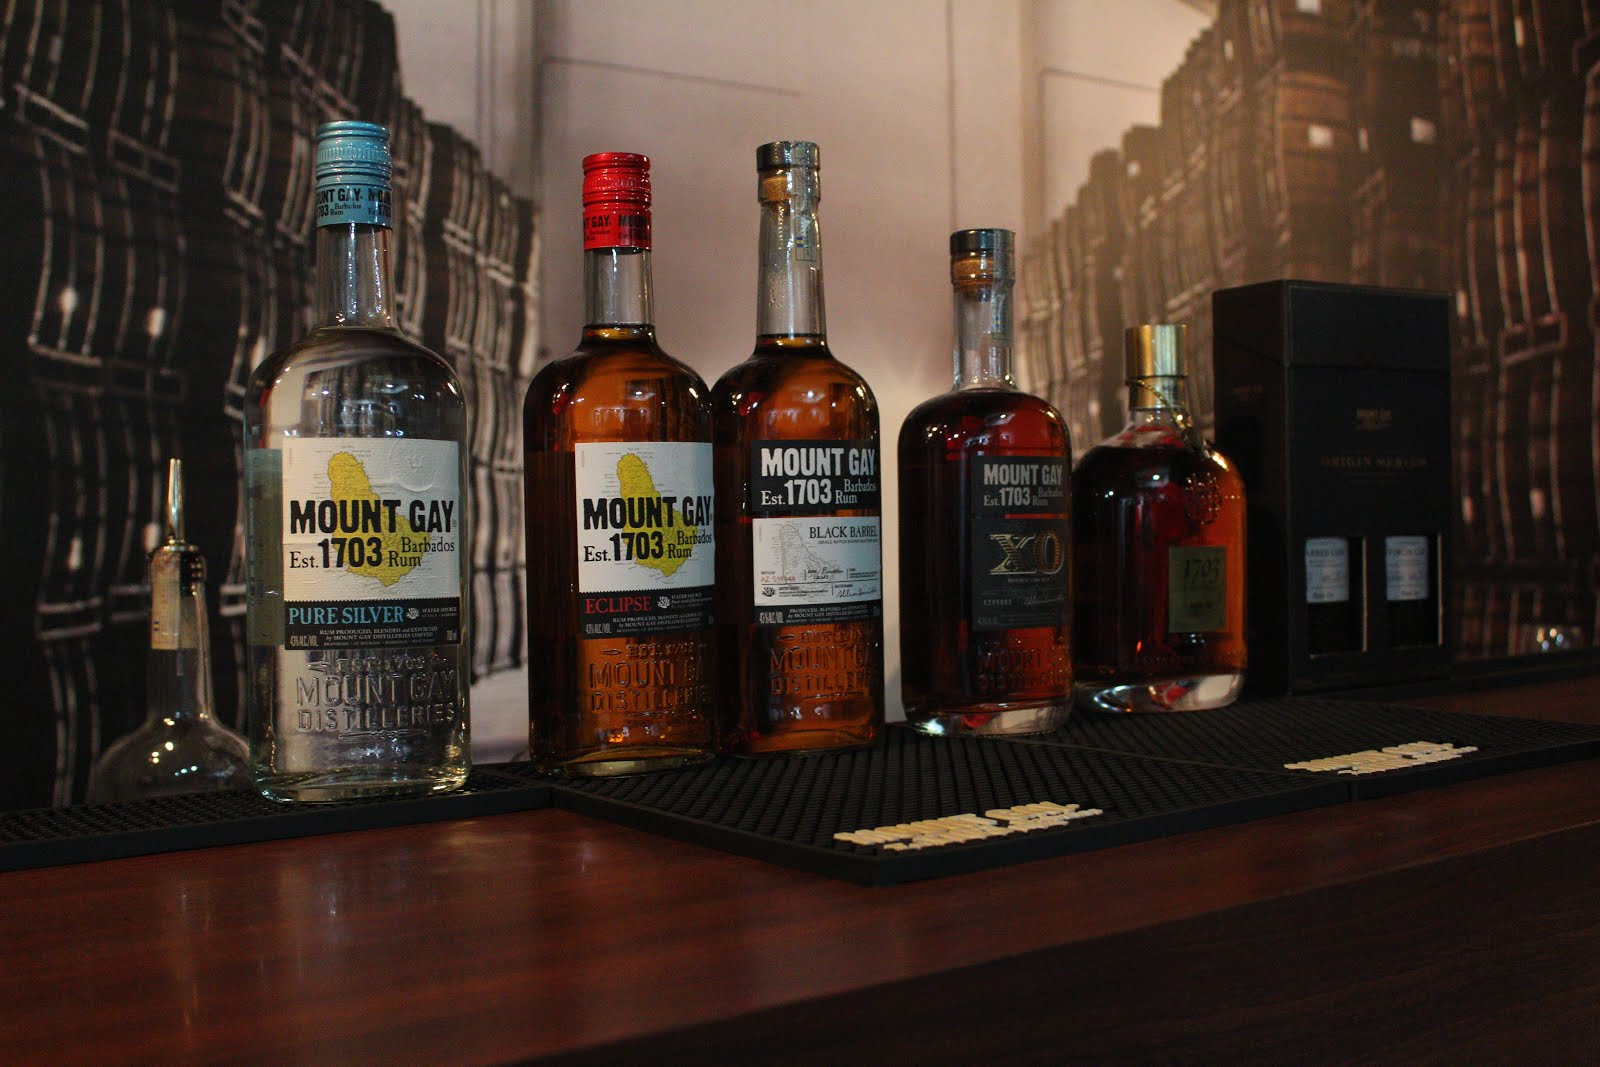 Mount Gay Rum Selection at the Visitor Centre